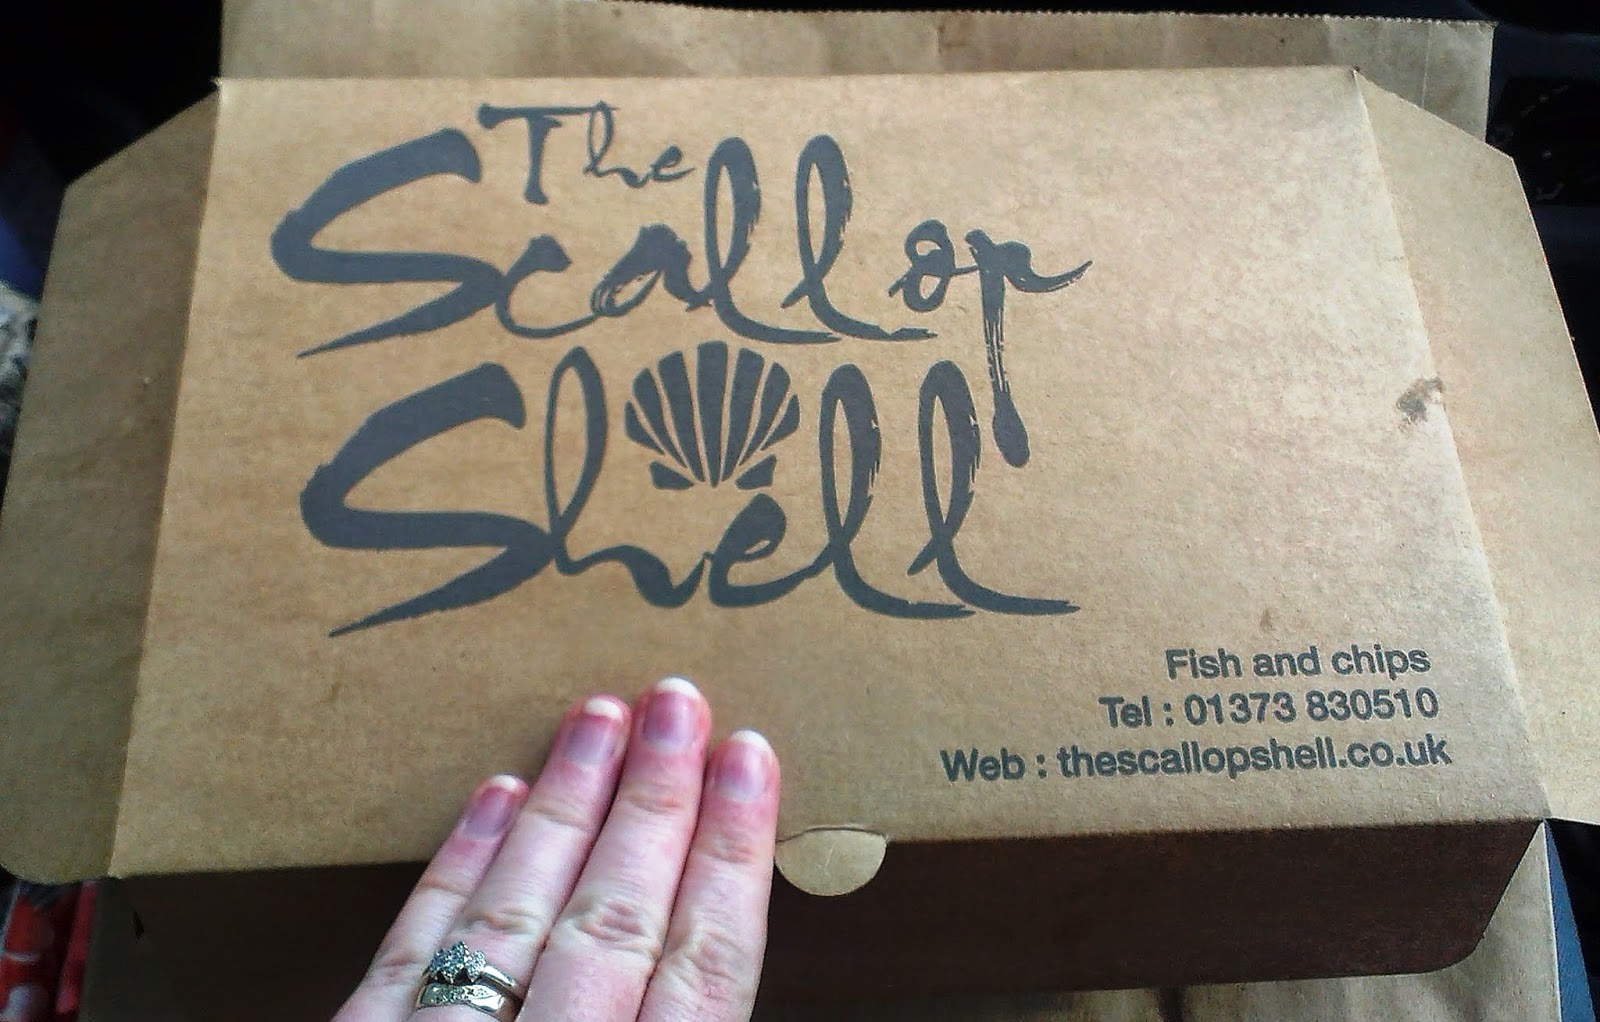 The Scallop Shell chip shop box